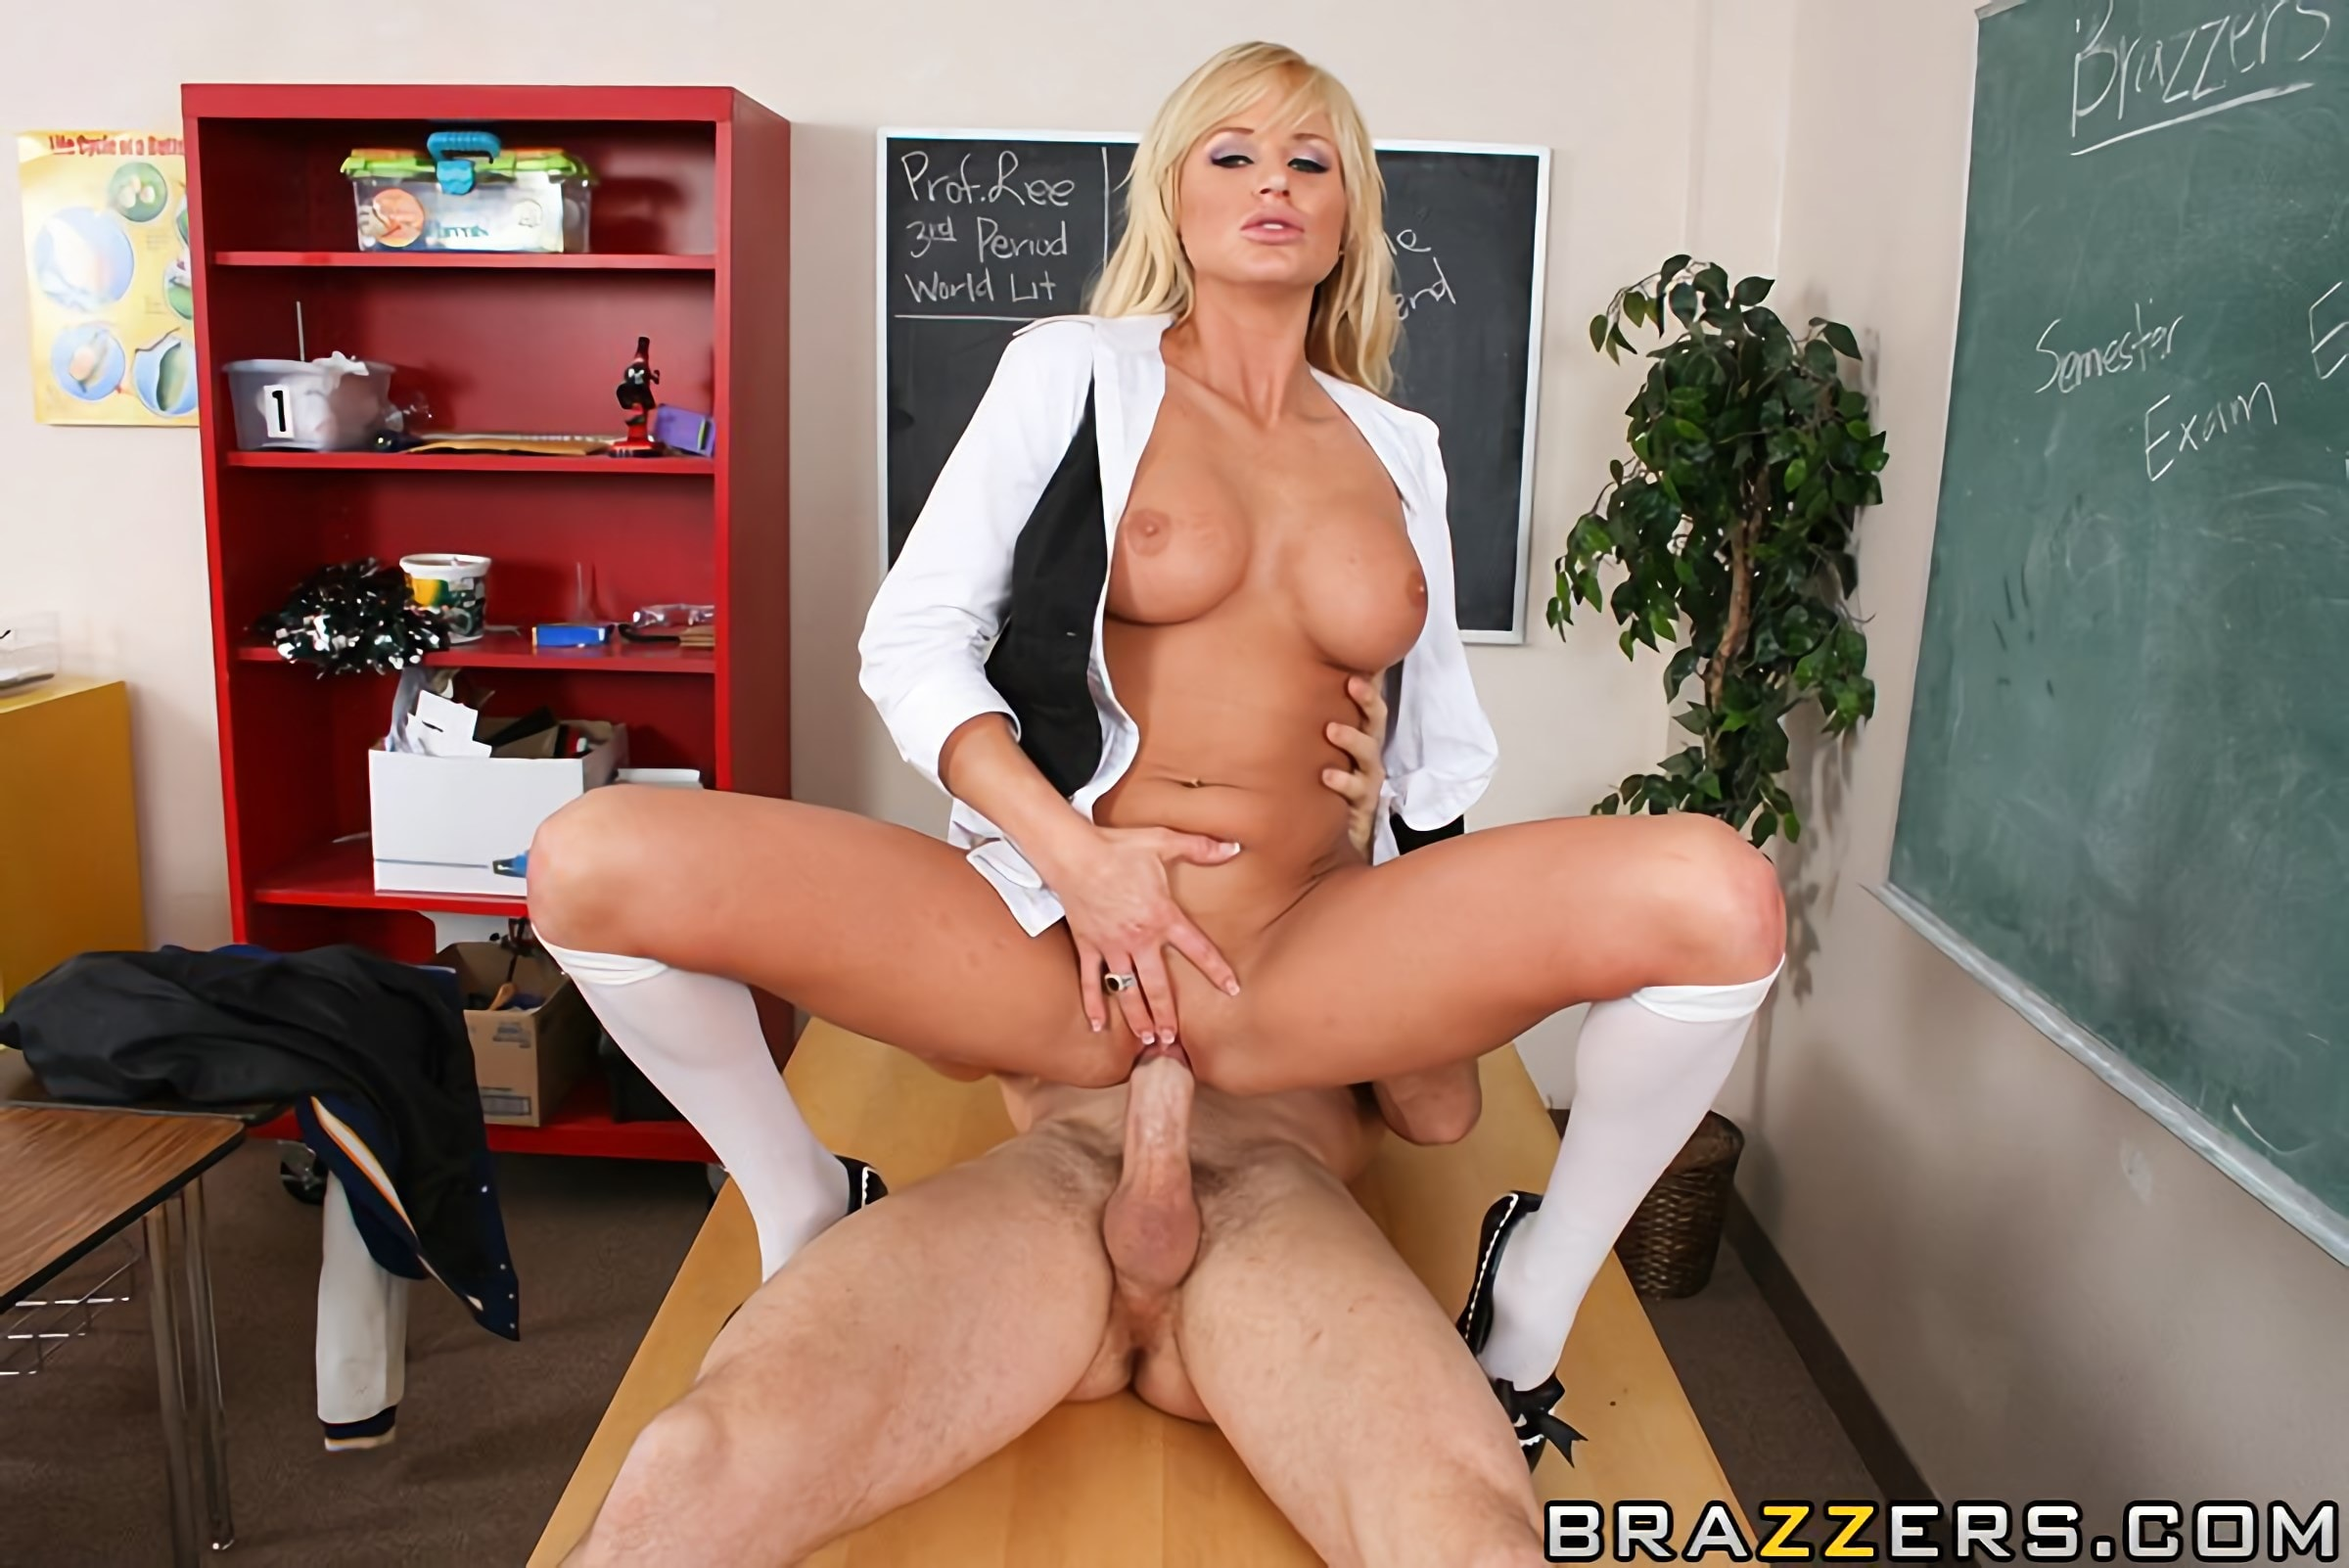 Brooke Belle - Gotta Get The Star On Board | Picture (13)